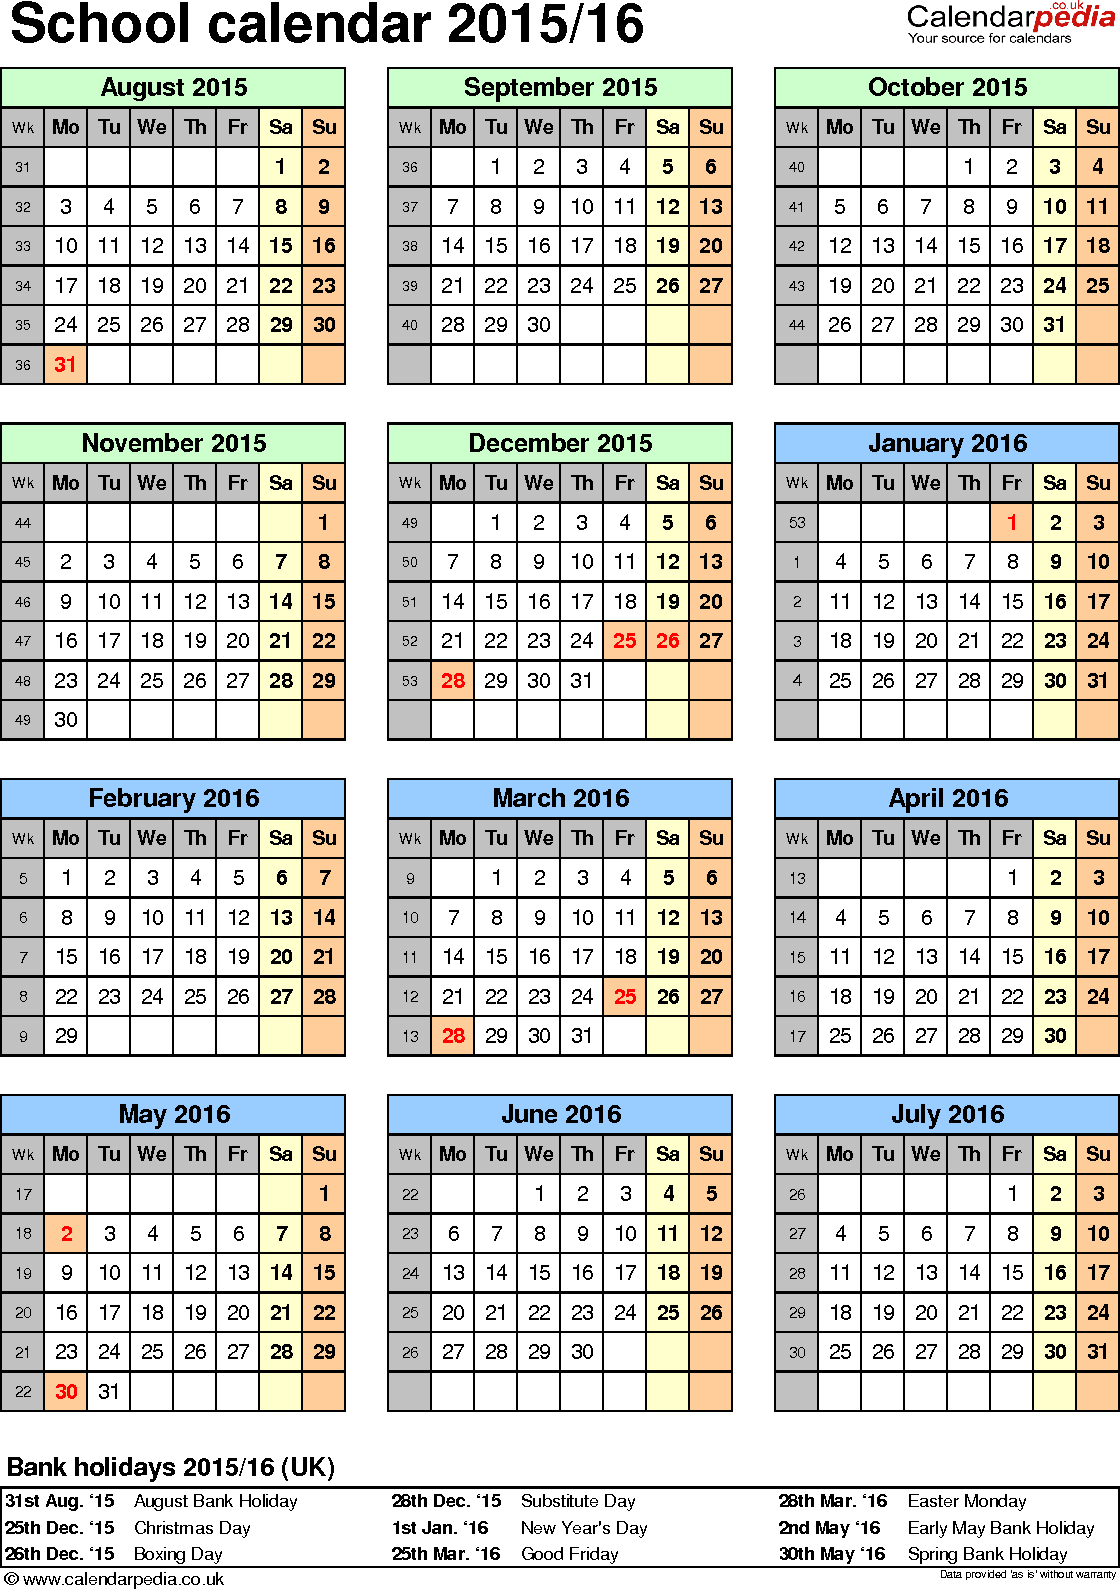 Template 5: School year calendars 2015/16 as Word template, portrait orientation, one A4 page